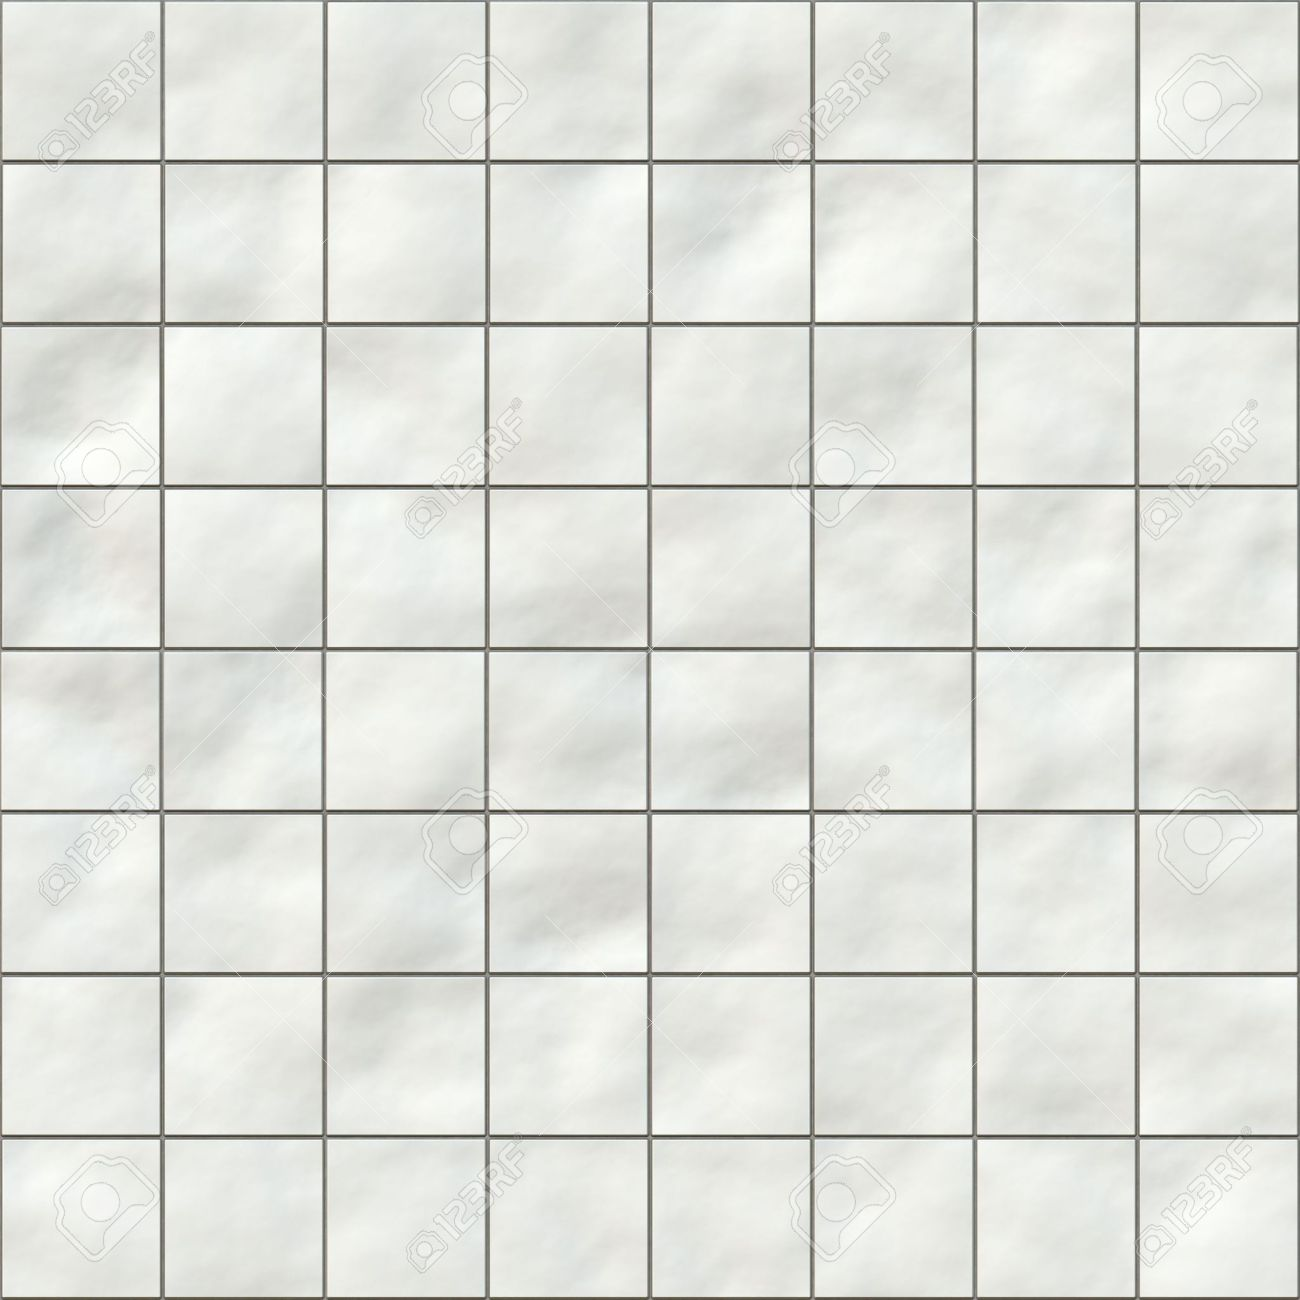 Popular More Than White Is A Collection Of Wall Tiles, With The Basic Tile Being A Deluxe Size Of 30 X 60 Centimeter In Matt Or Gloss White, And A Further Extensive Selection Of A Range Of Style Choices, Including Strips And Mosaics The Plain White 30 X